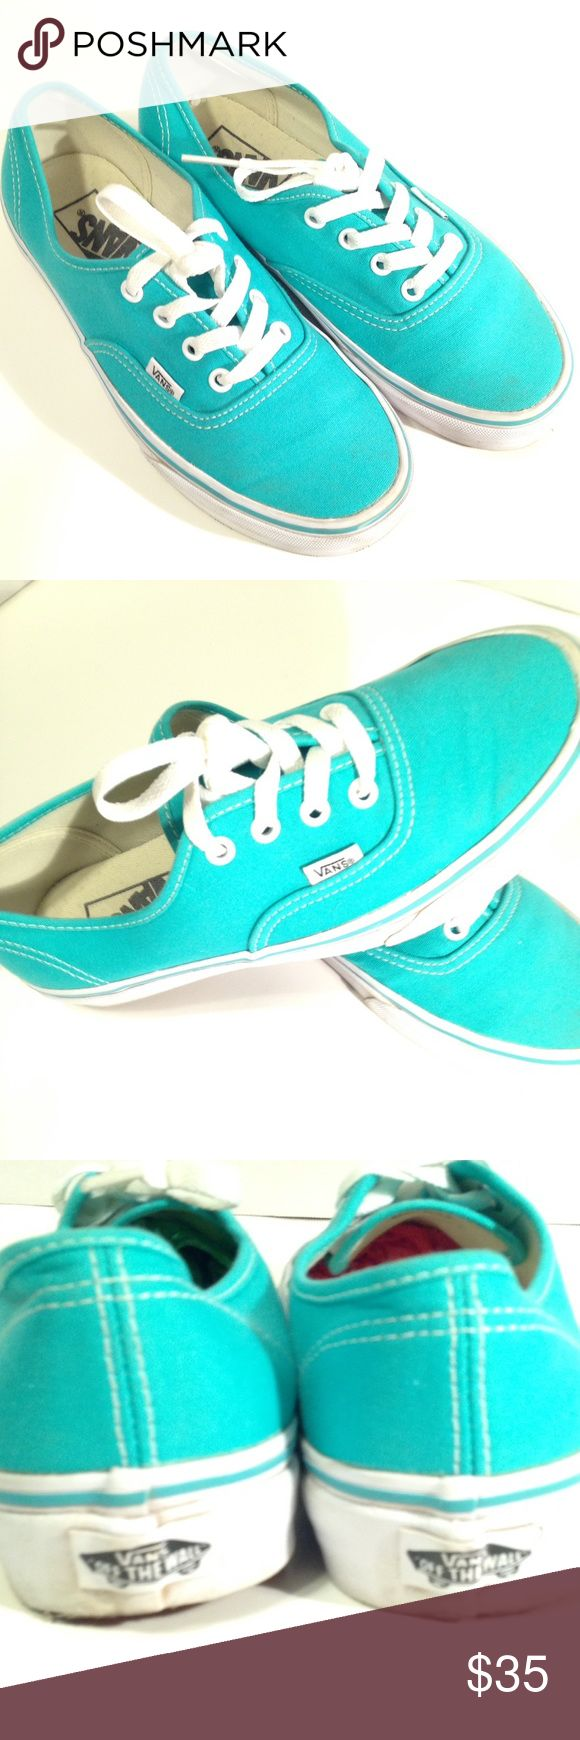 Mint green VANS. Size In excellence used condition. Only worn once because they are a bit too big on me. Mint green. Thank you for visiting my closet! Vans Shoes Sneakers